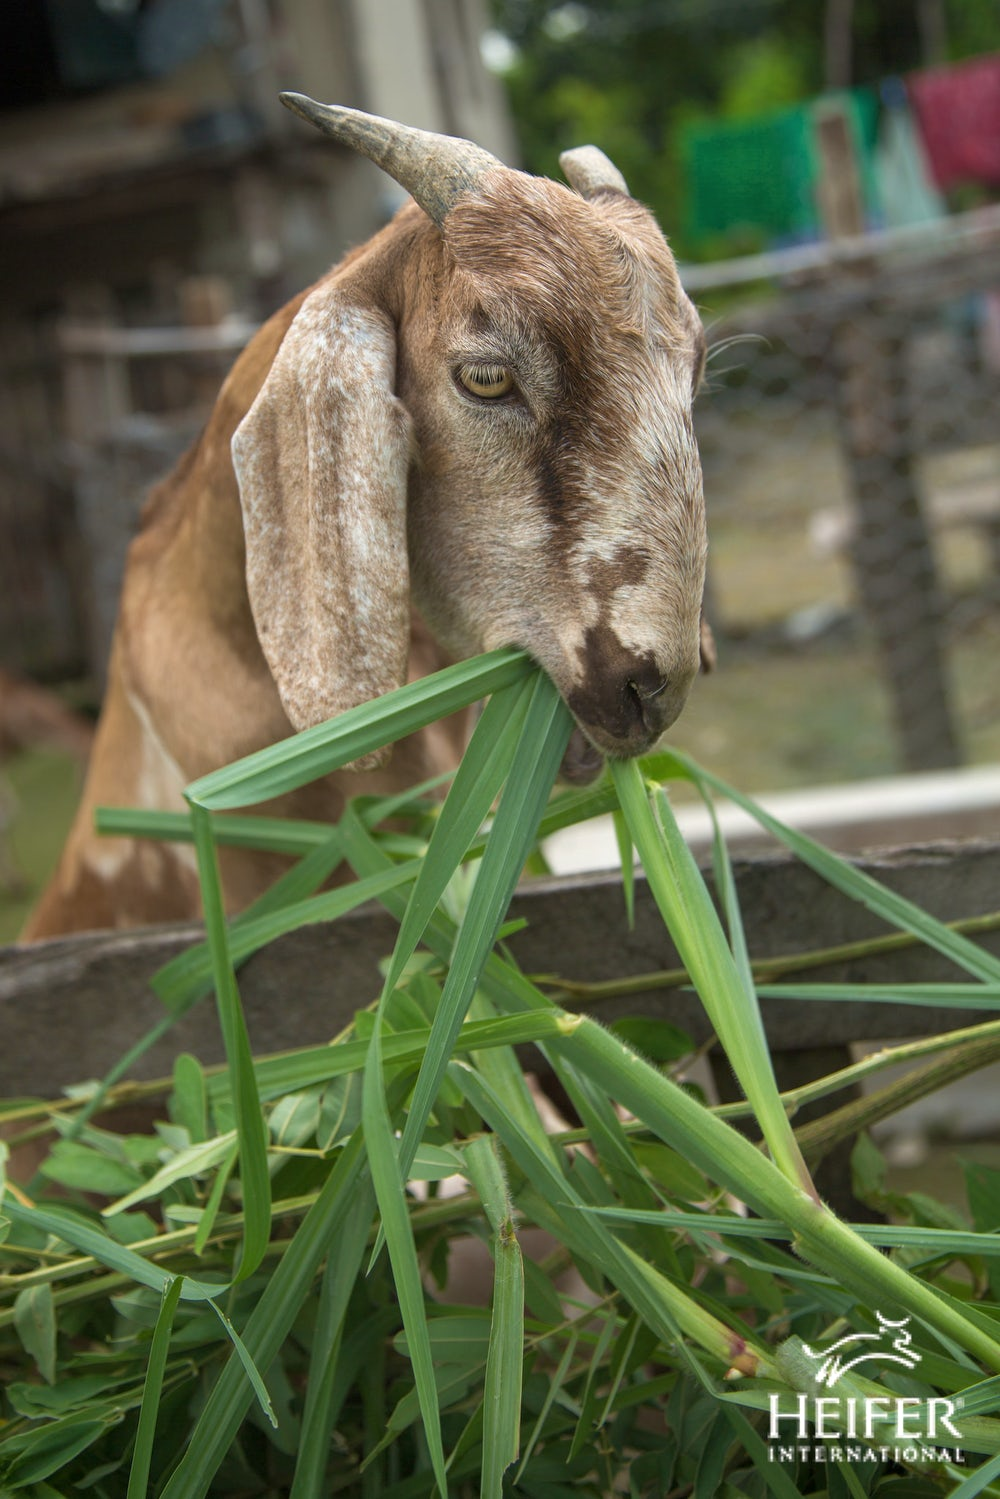 A close-up of a goat chewing on some grass.